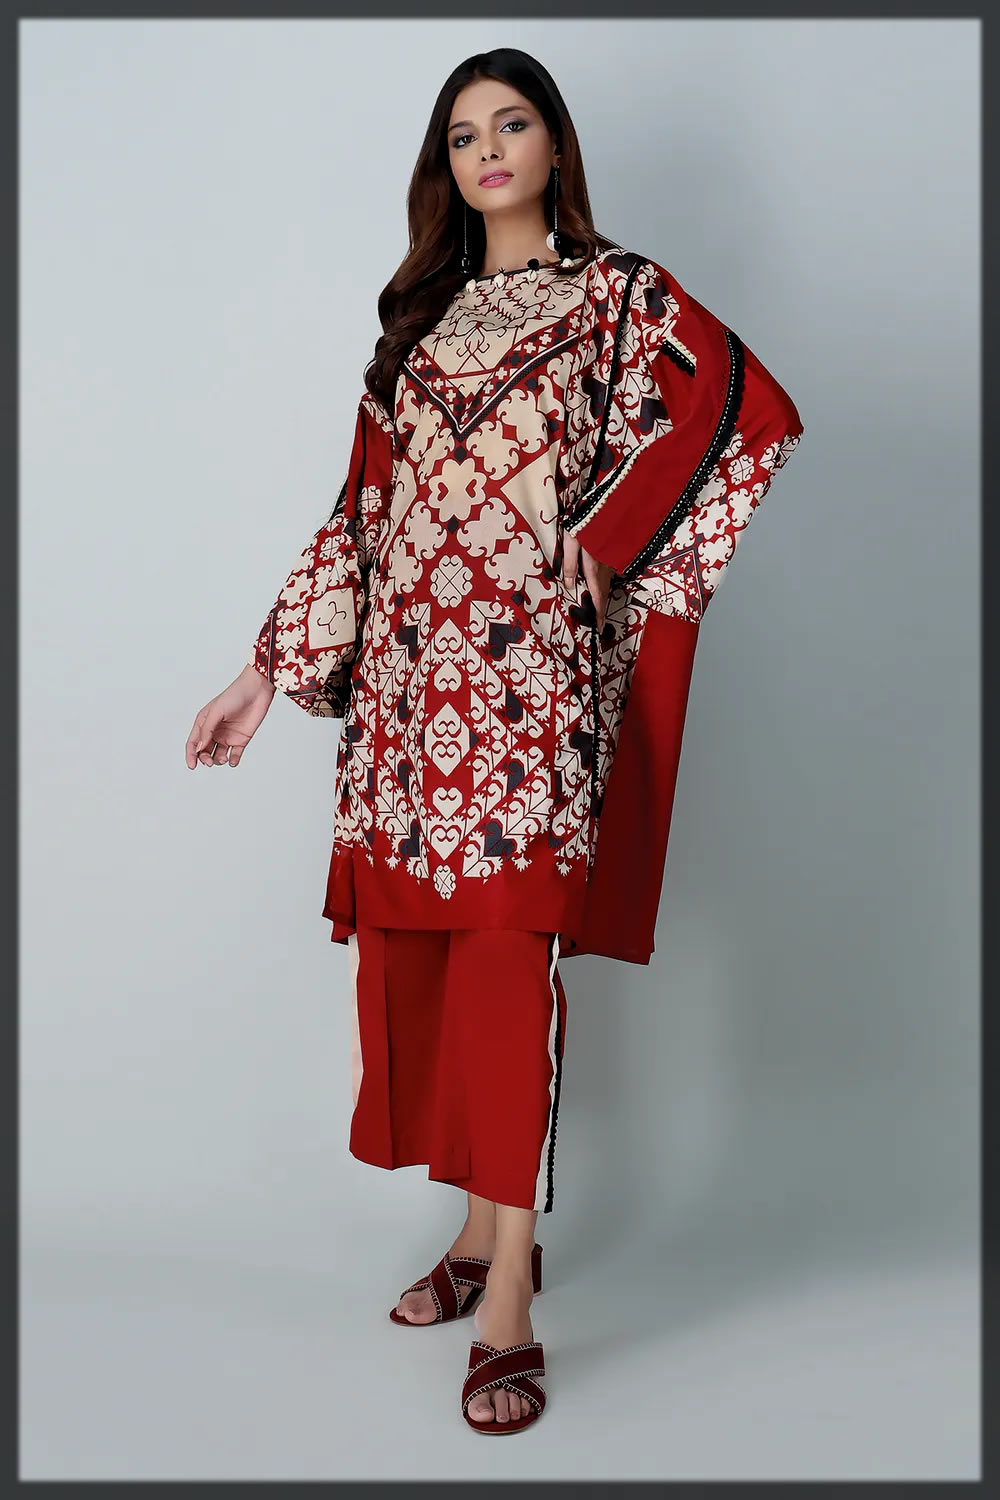 bold red 2 piece unstitched lawn outfit with stylized prints